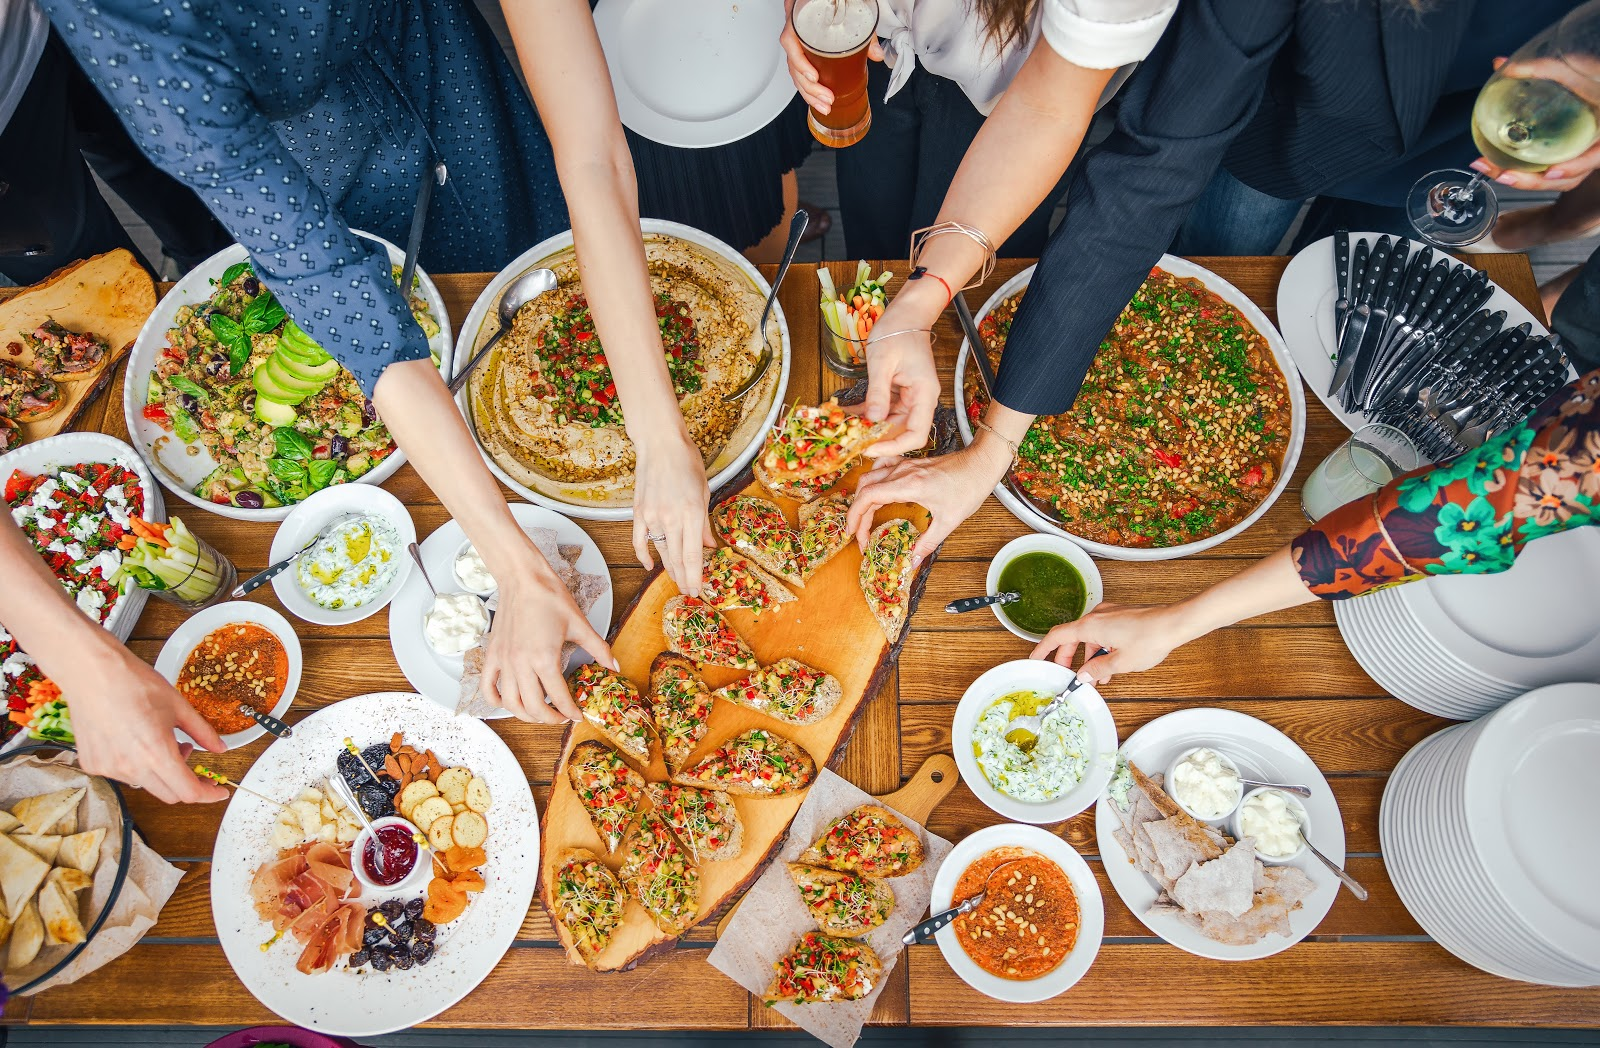 Friends Happiness Enjoying Dinning Eating Concept. Food Buffet. Catering Dining. Eating Party. Sharing Concept. close-up